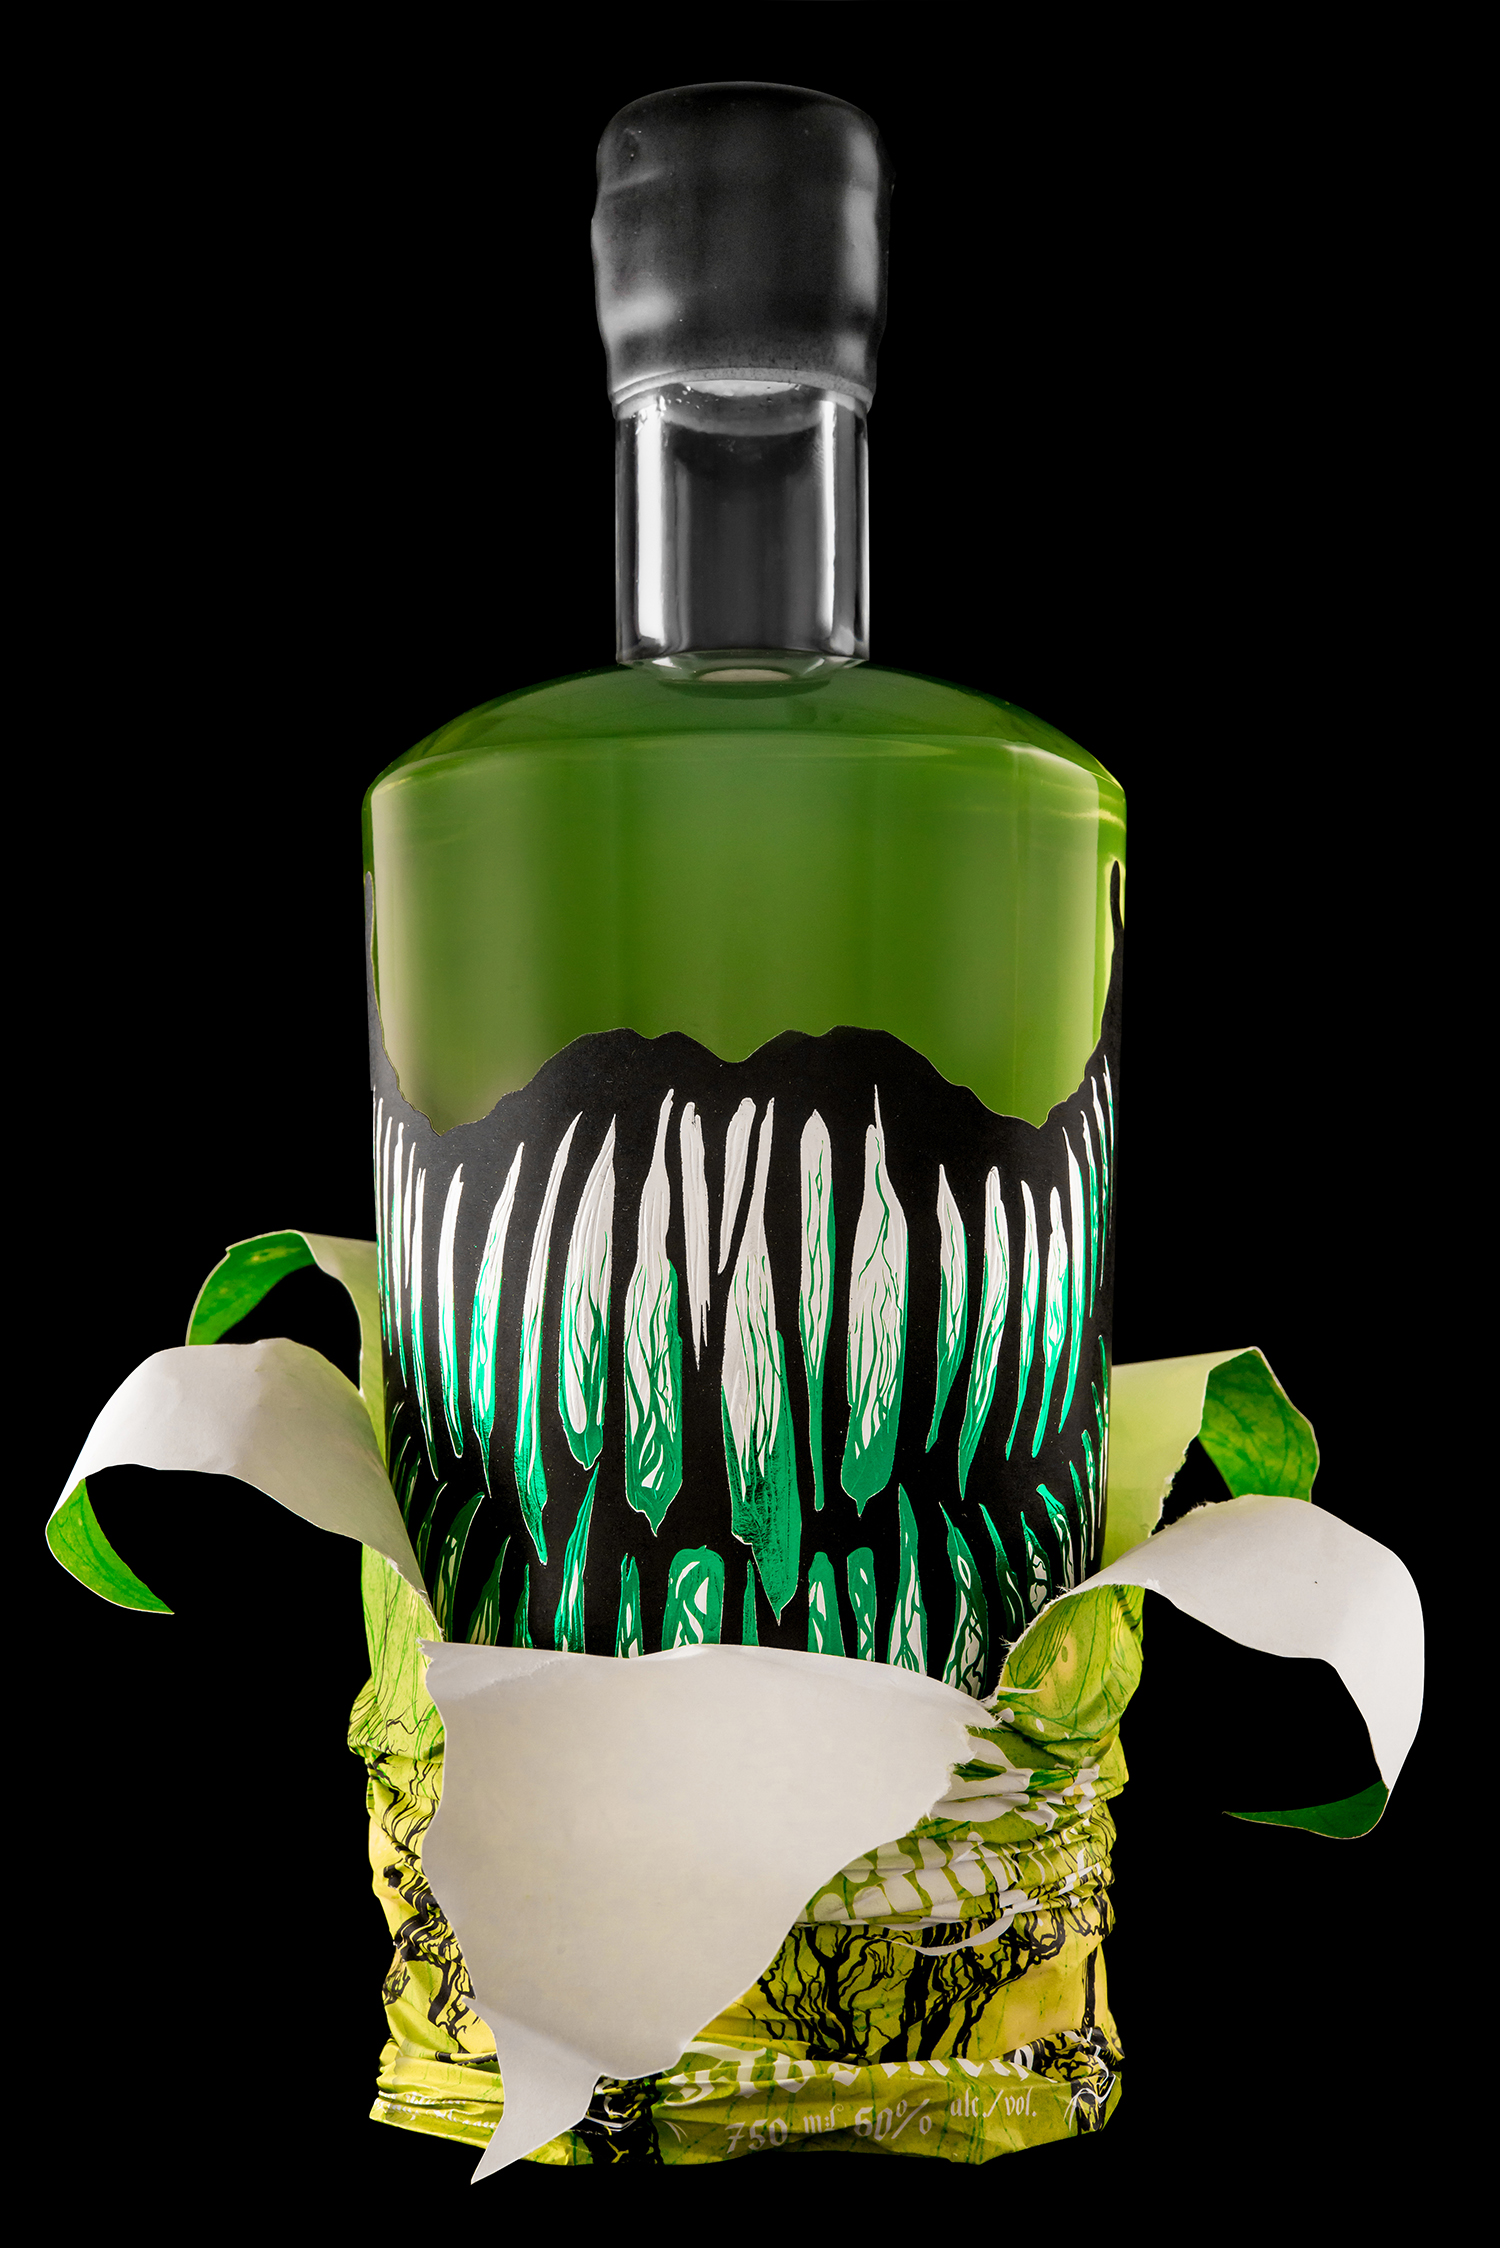 Packaging Design for Arbutus Distillery's Baba Yaga Absinthe